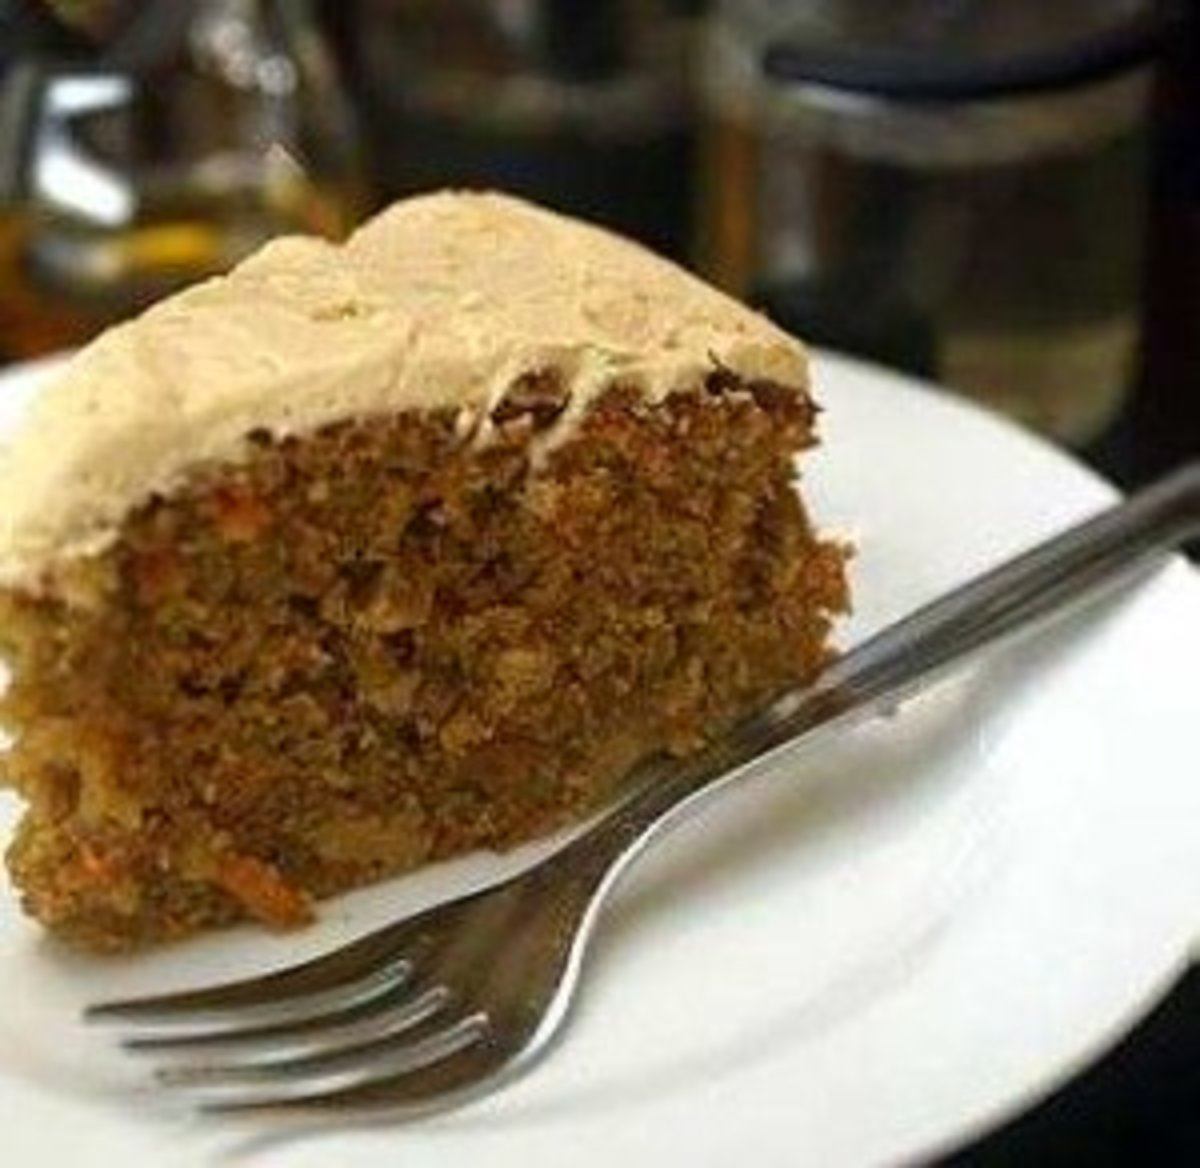 Best Low-Fat Carrot Cake Recipe (Use Grape Seed Oil Instead of Butter/Margarine)